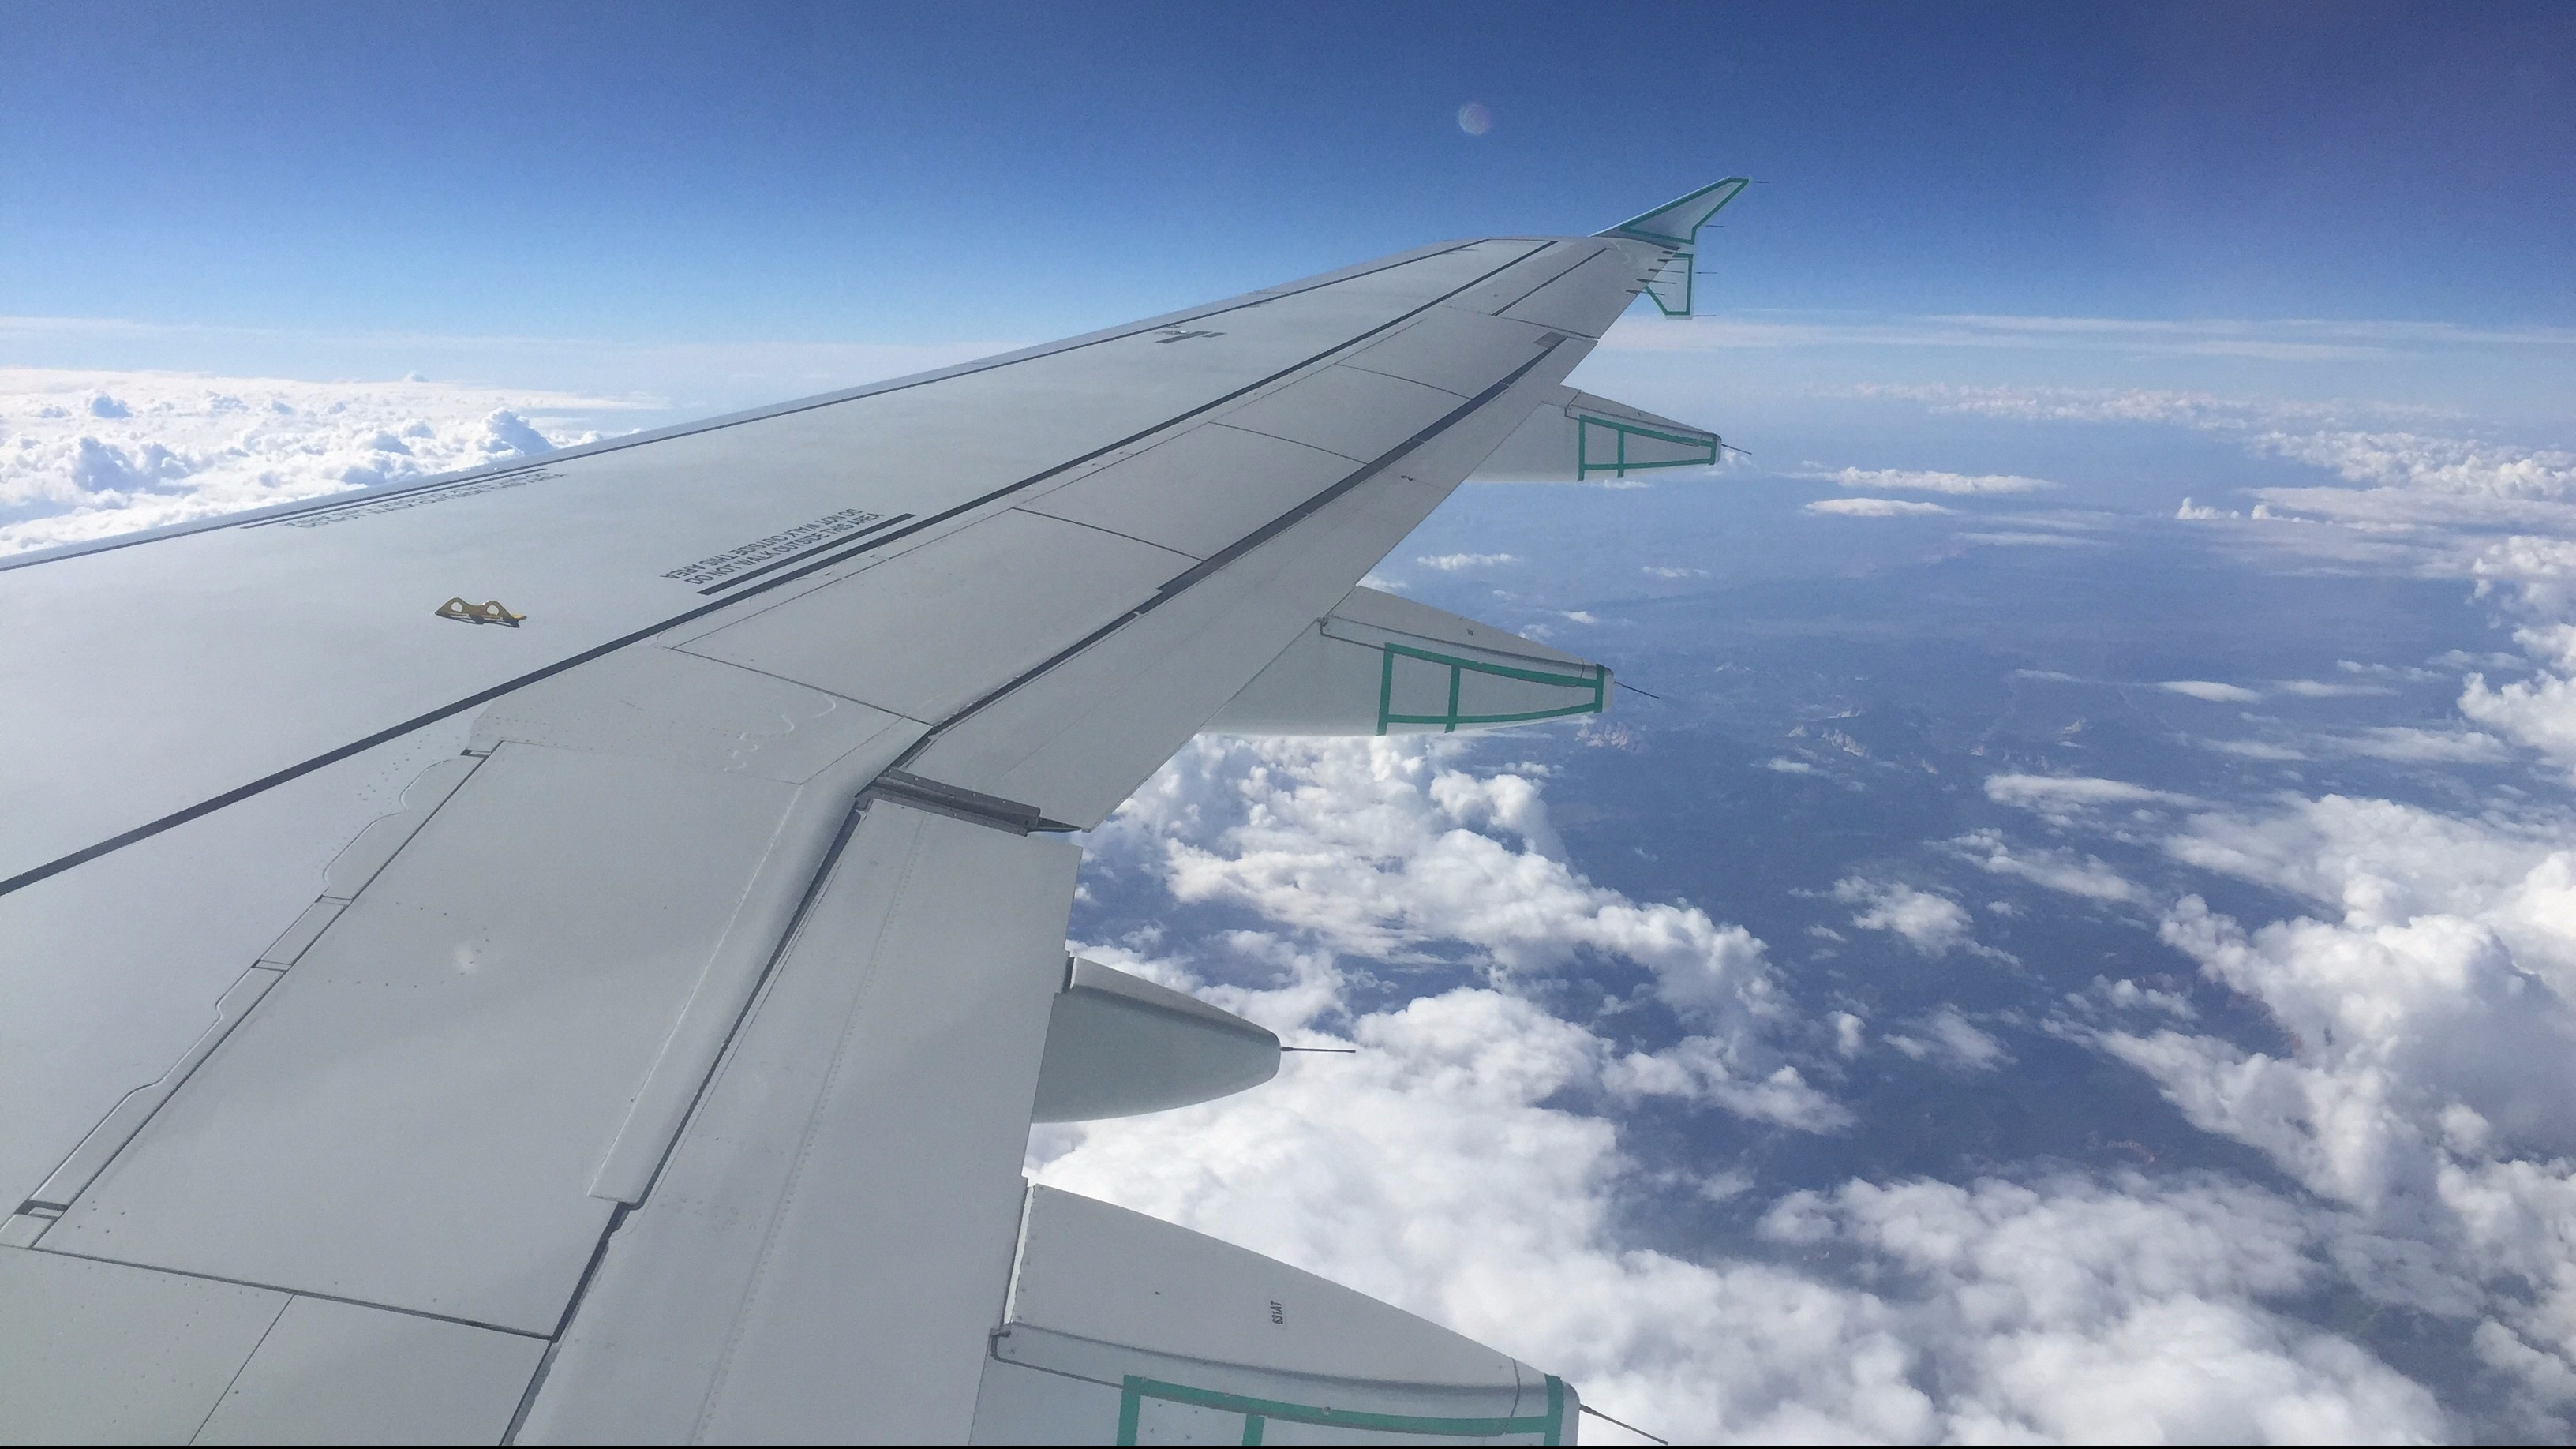 Review: Air Canada Economy A319-100 Los Angeles to Montreal